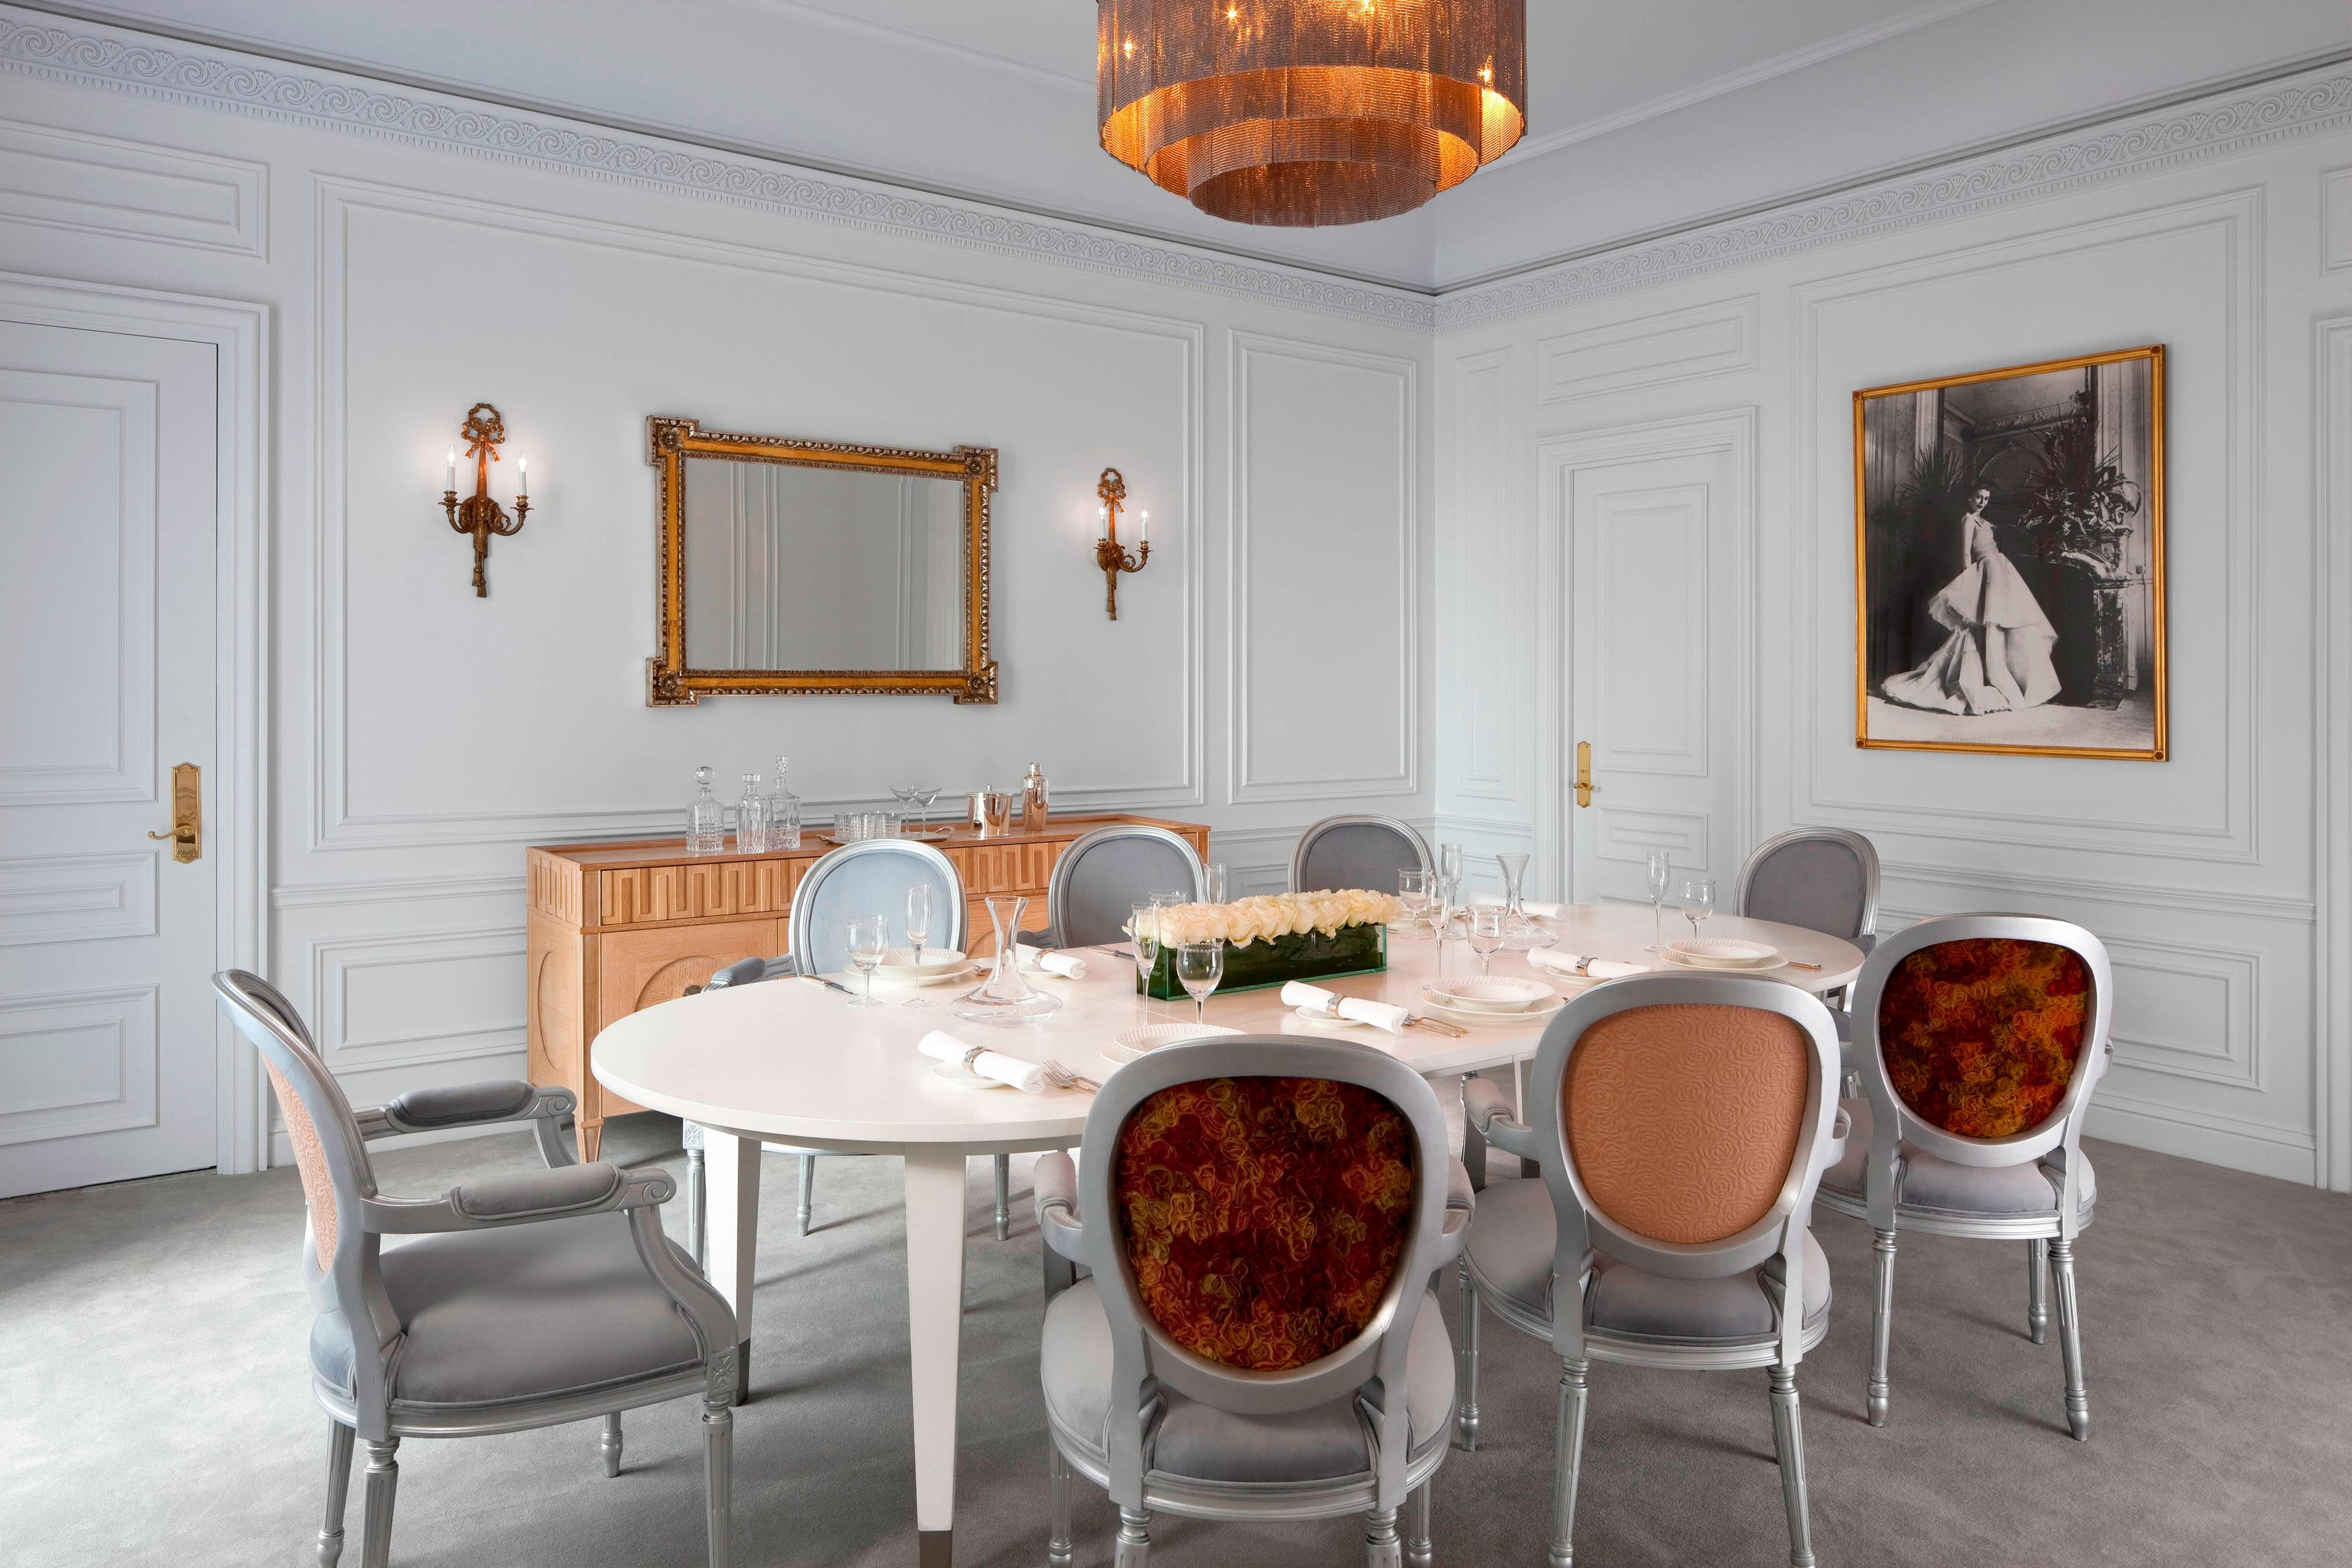 Dior Suite - Dining Room